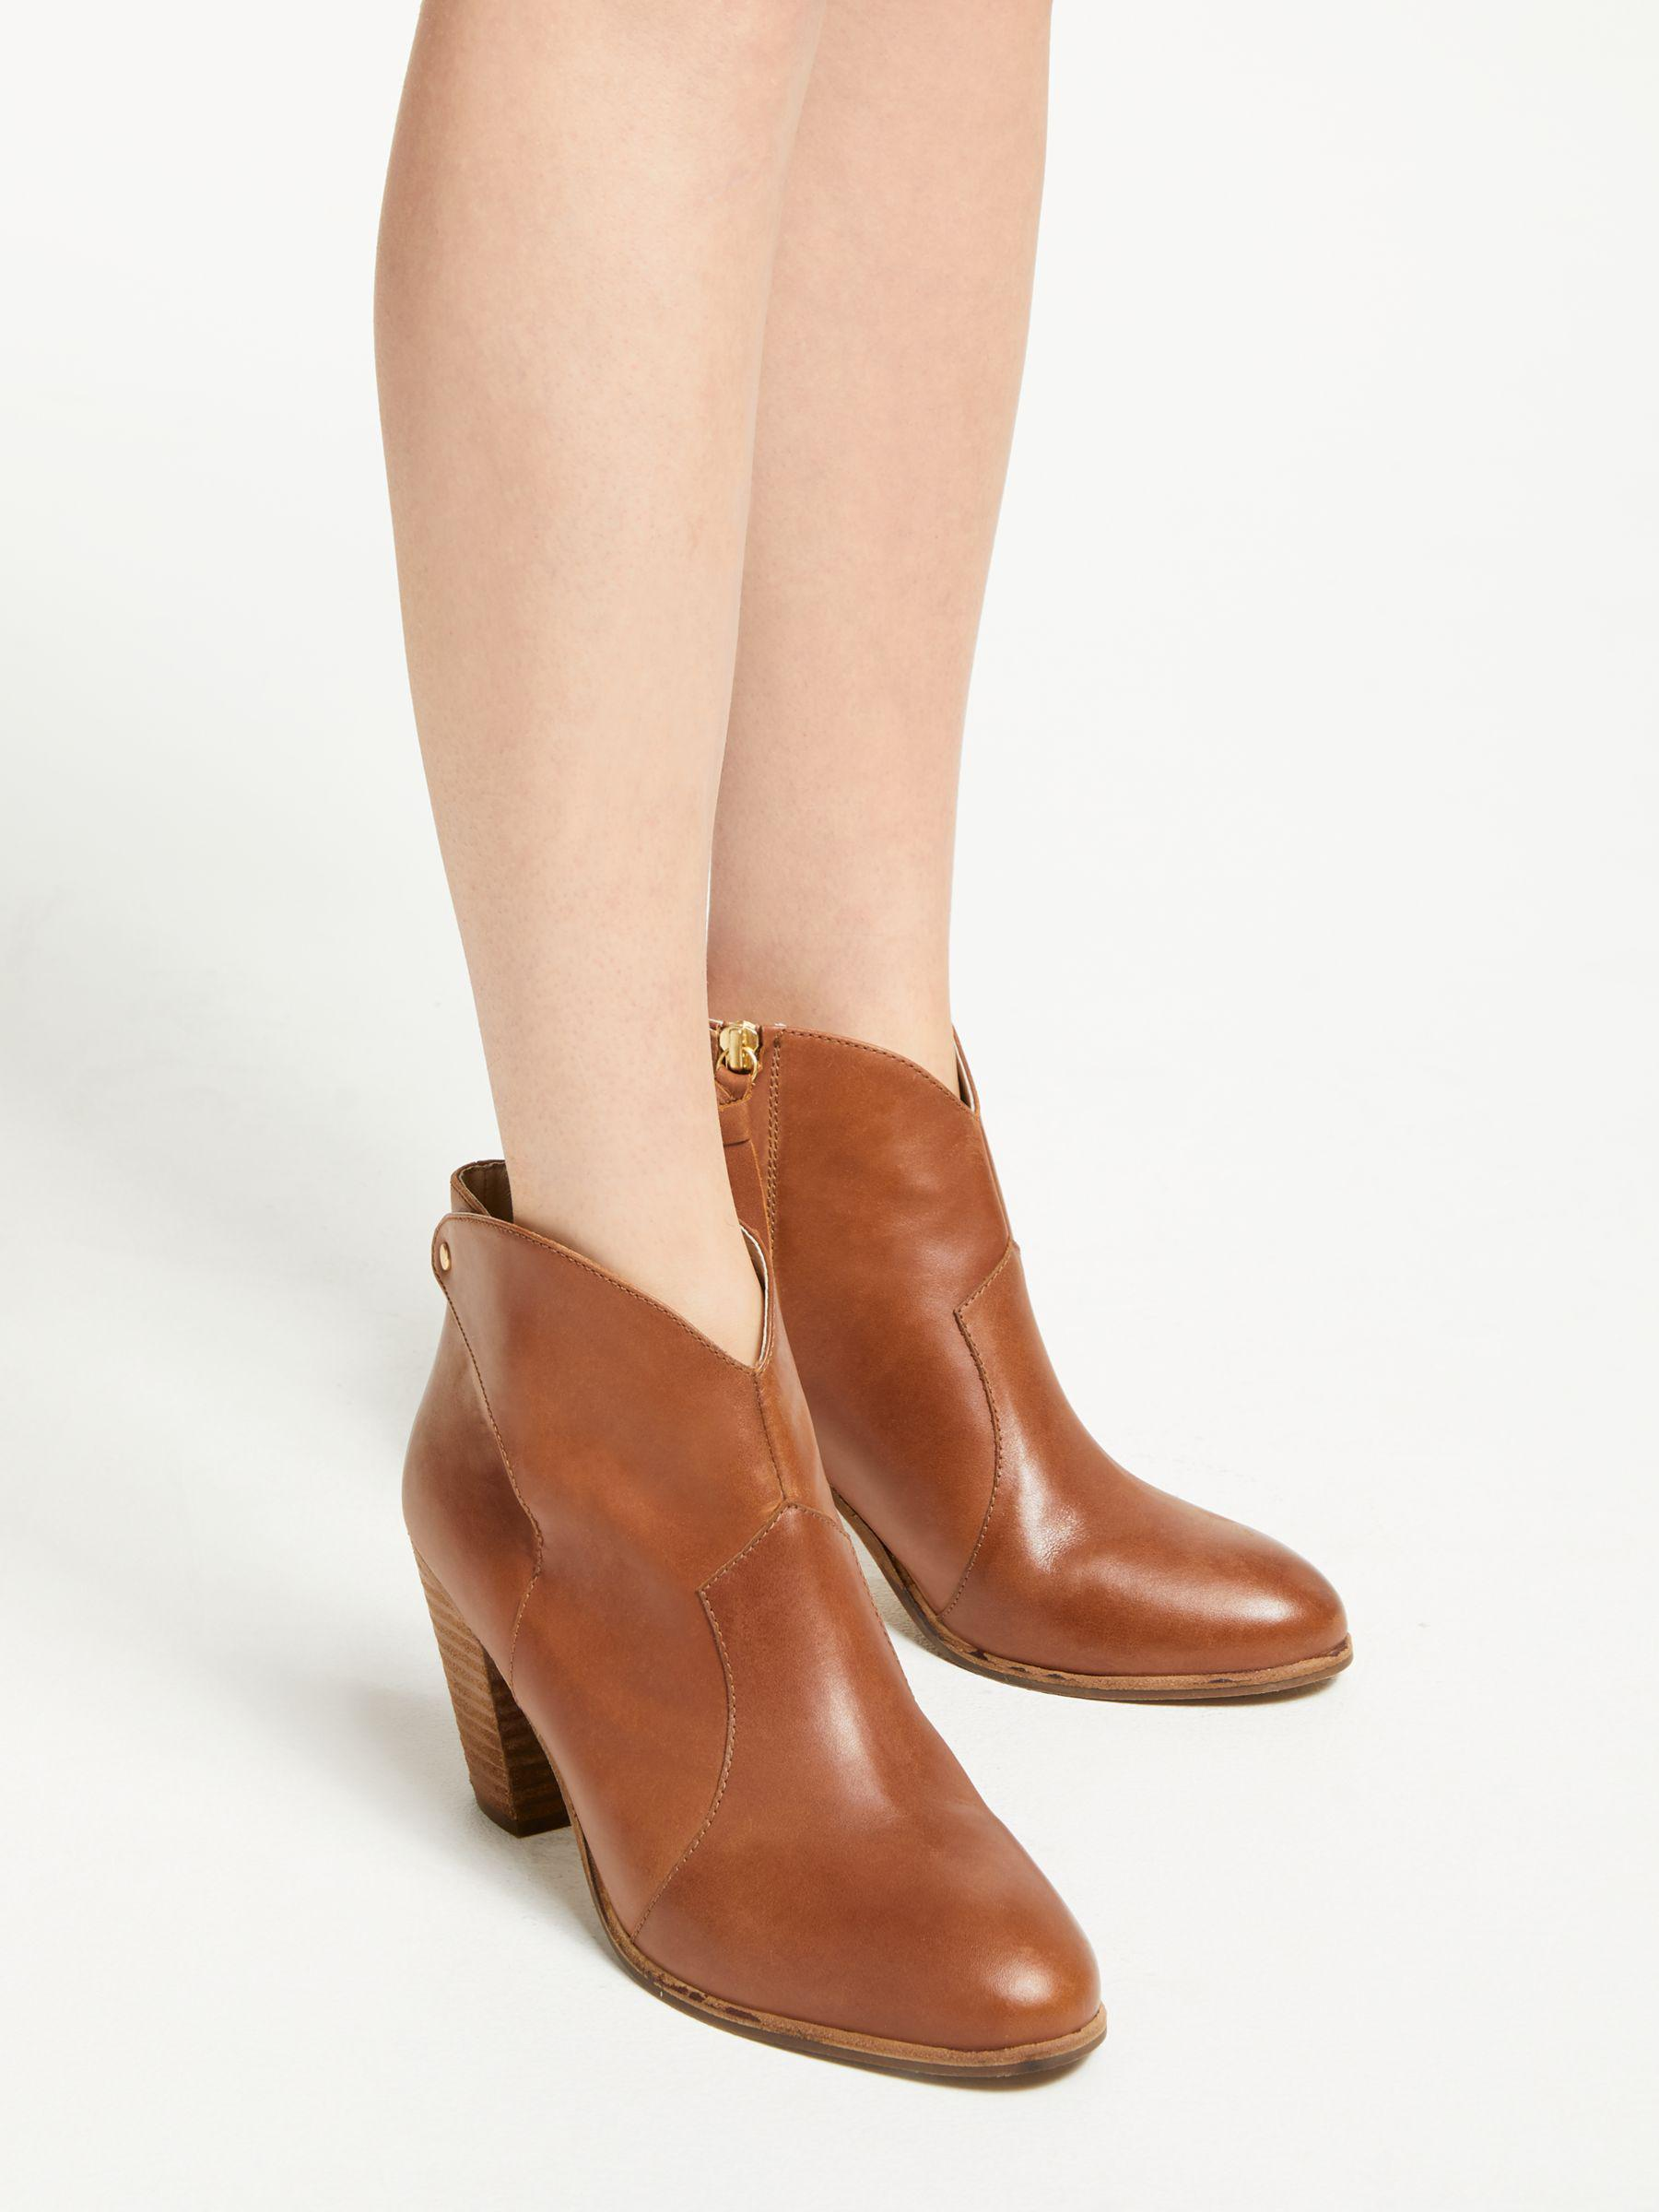 replicas on feet at best service Boden Denim Hoxton Heeled Ankle Boots in Tan Leather (Brown ...